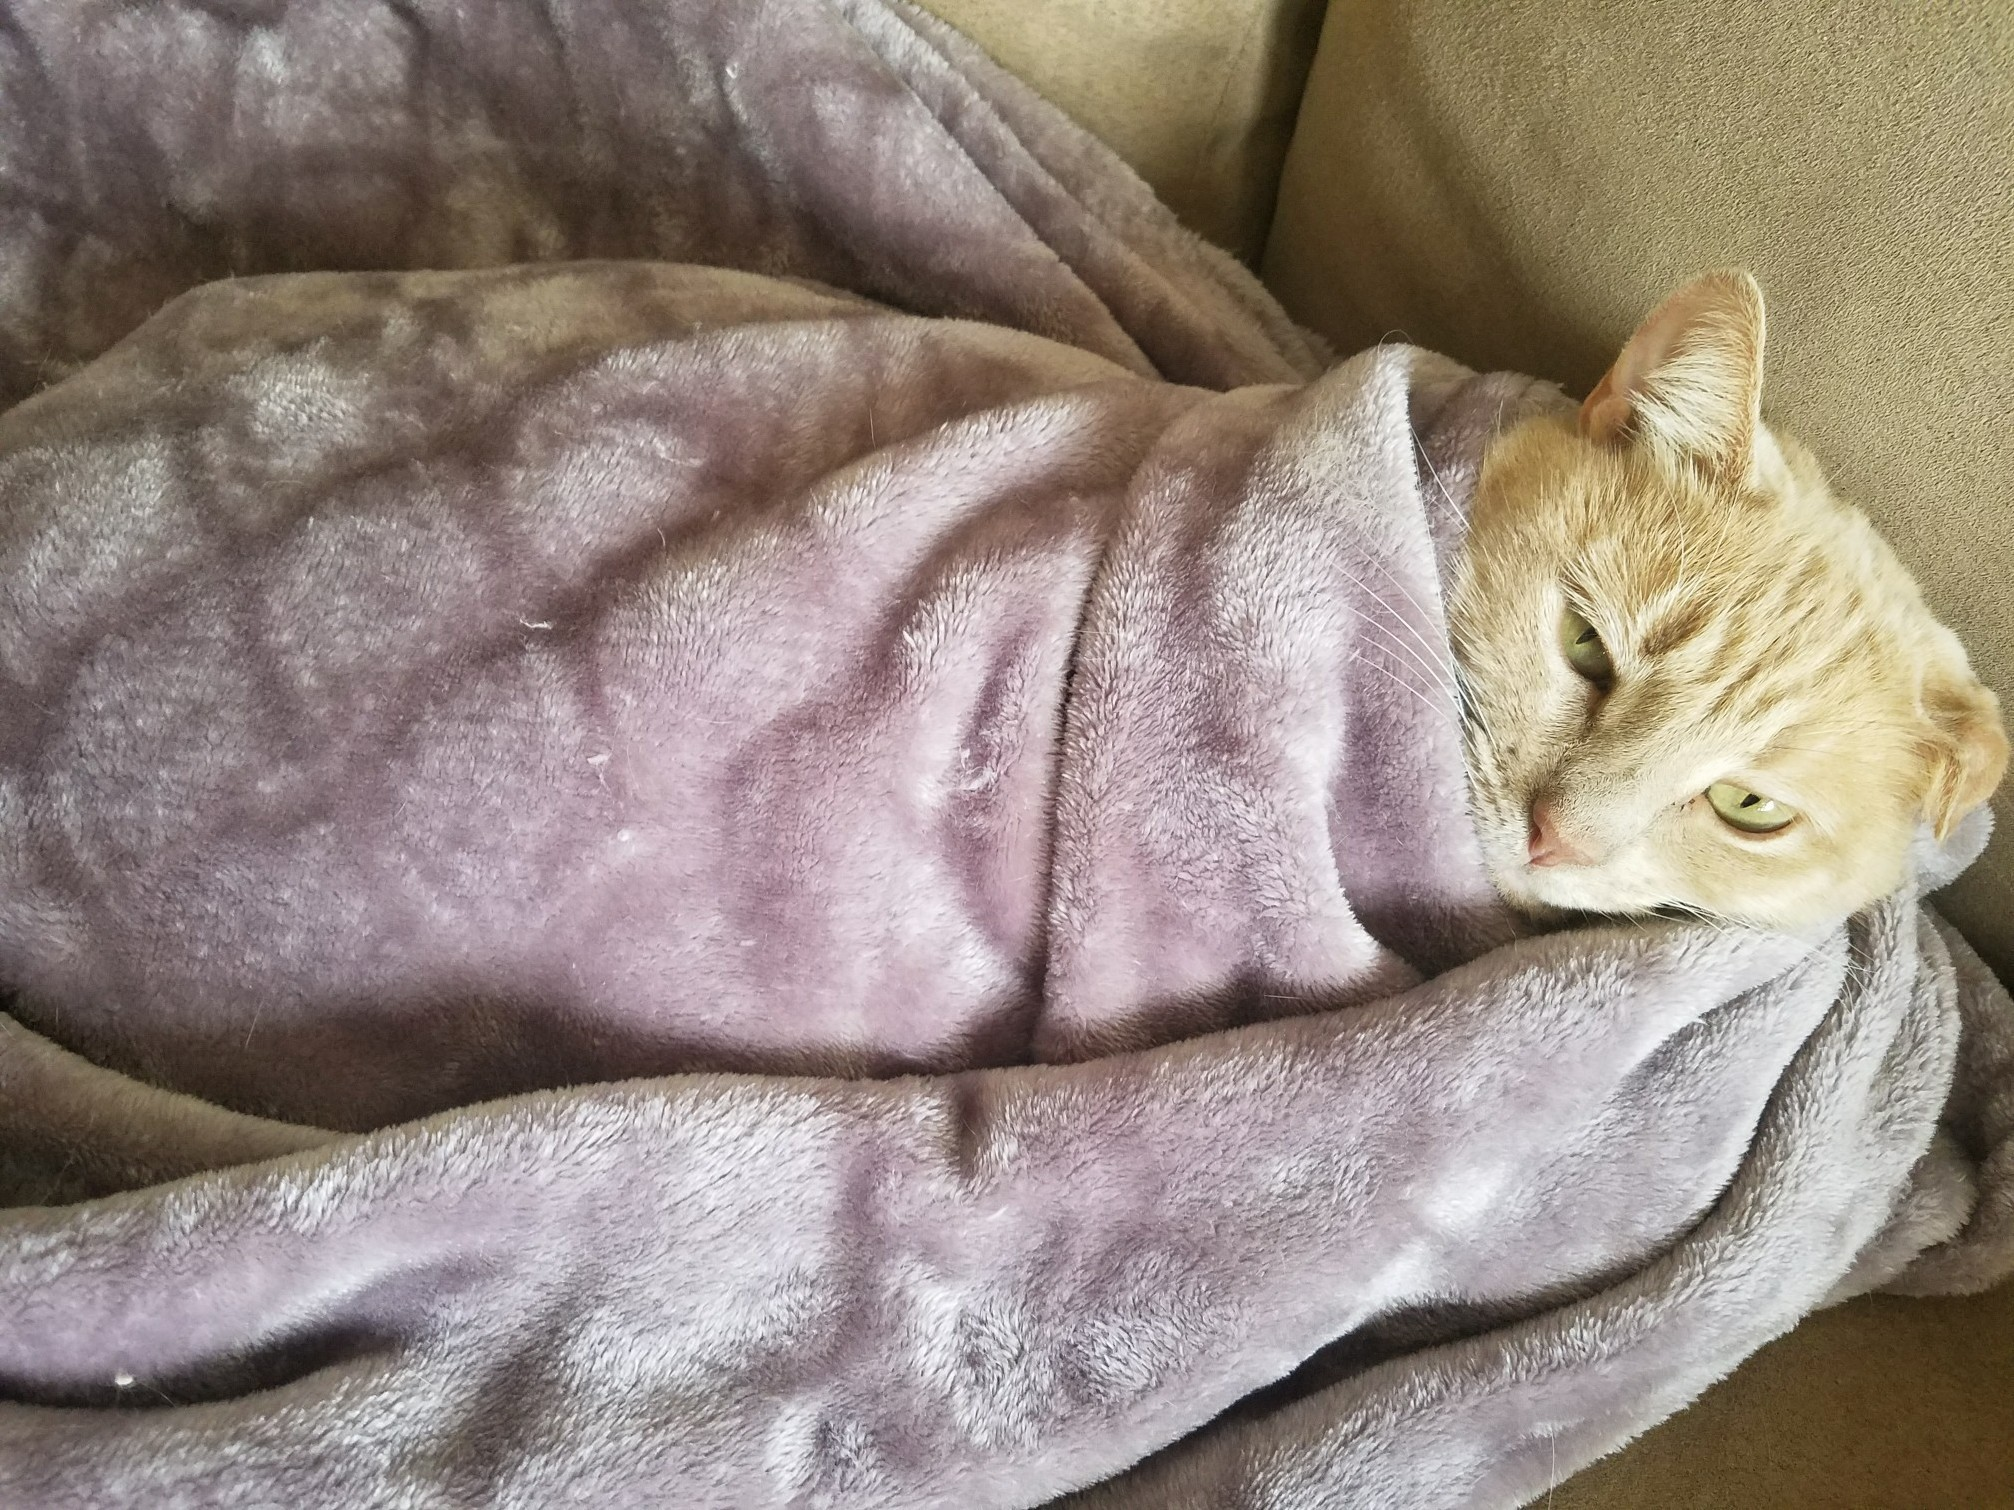 My little burrito